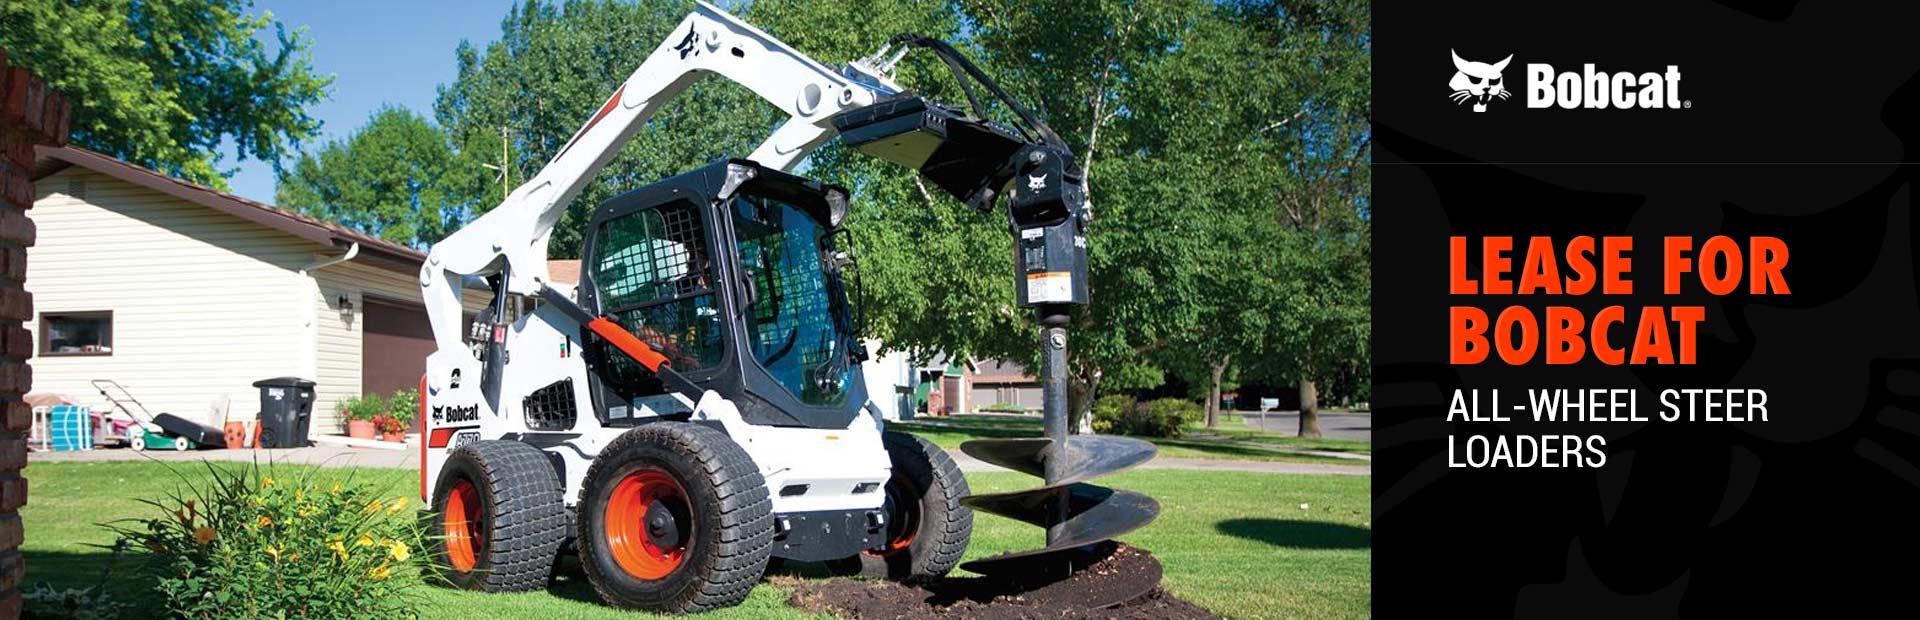 Bobcat: Lease for Bobcat All-Wheel Steer Loaders